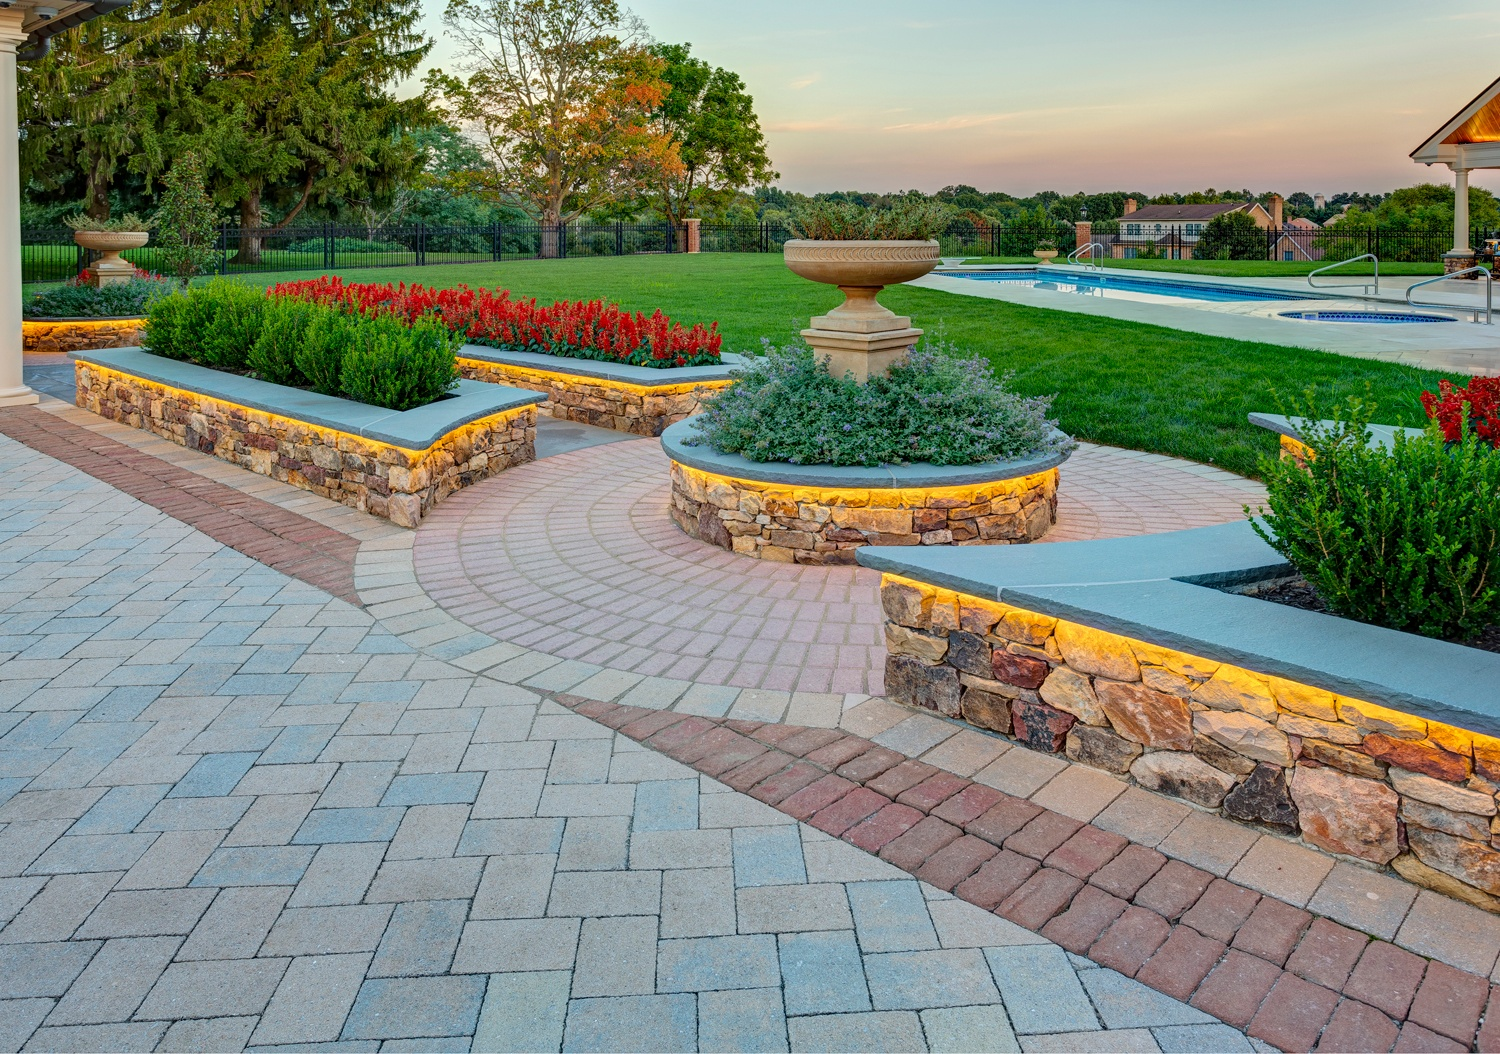 4 Expert Tips for the Best Paver Patio Design on Paver Patio Designs id=52963